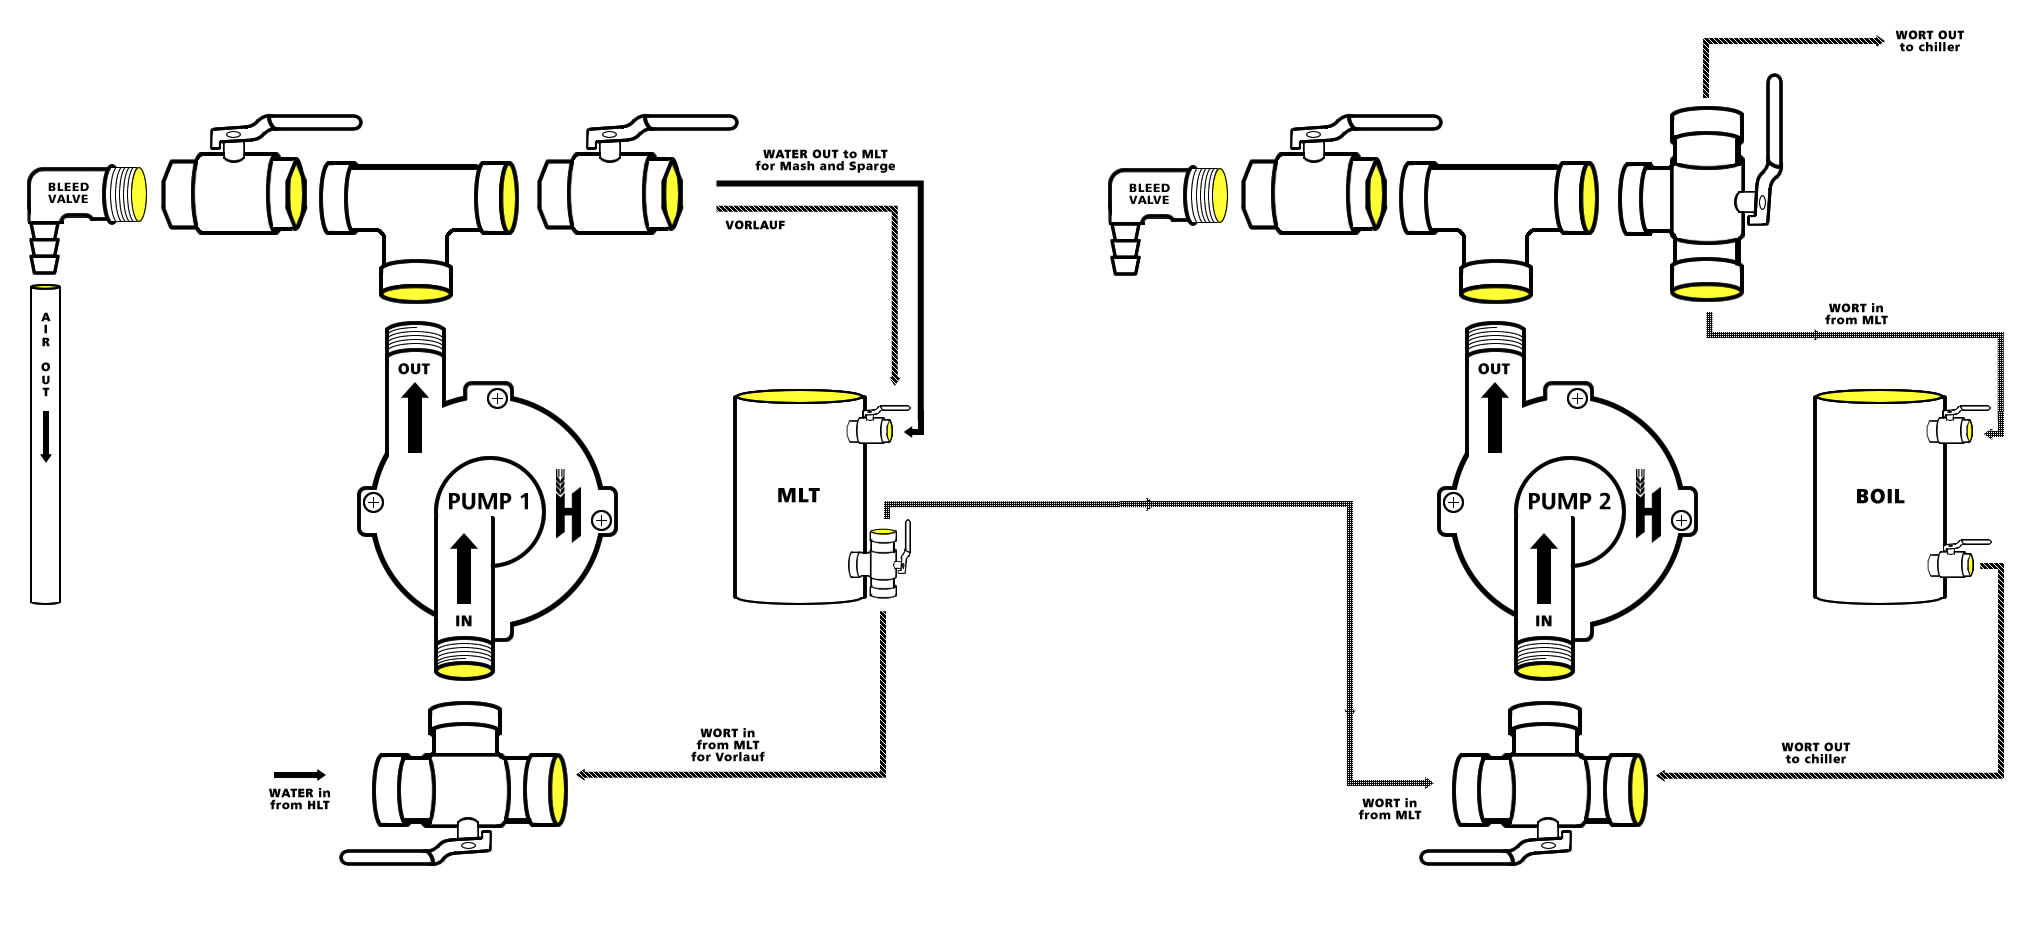 schematic 3 way valve the wiring diagram schematic 3 way valve vidim wiring diagram schematic